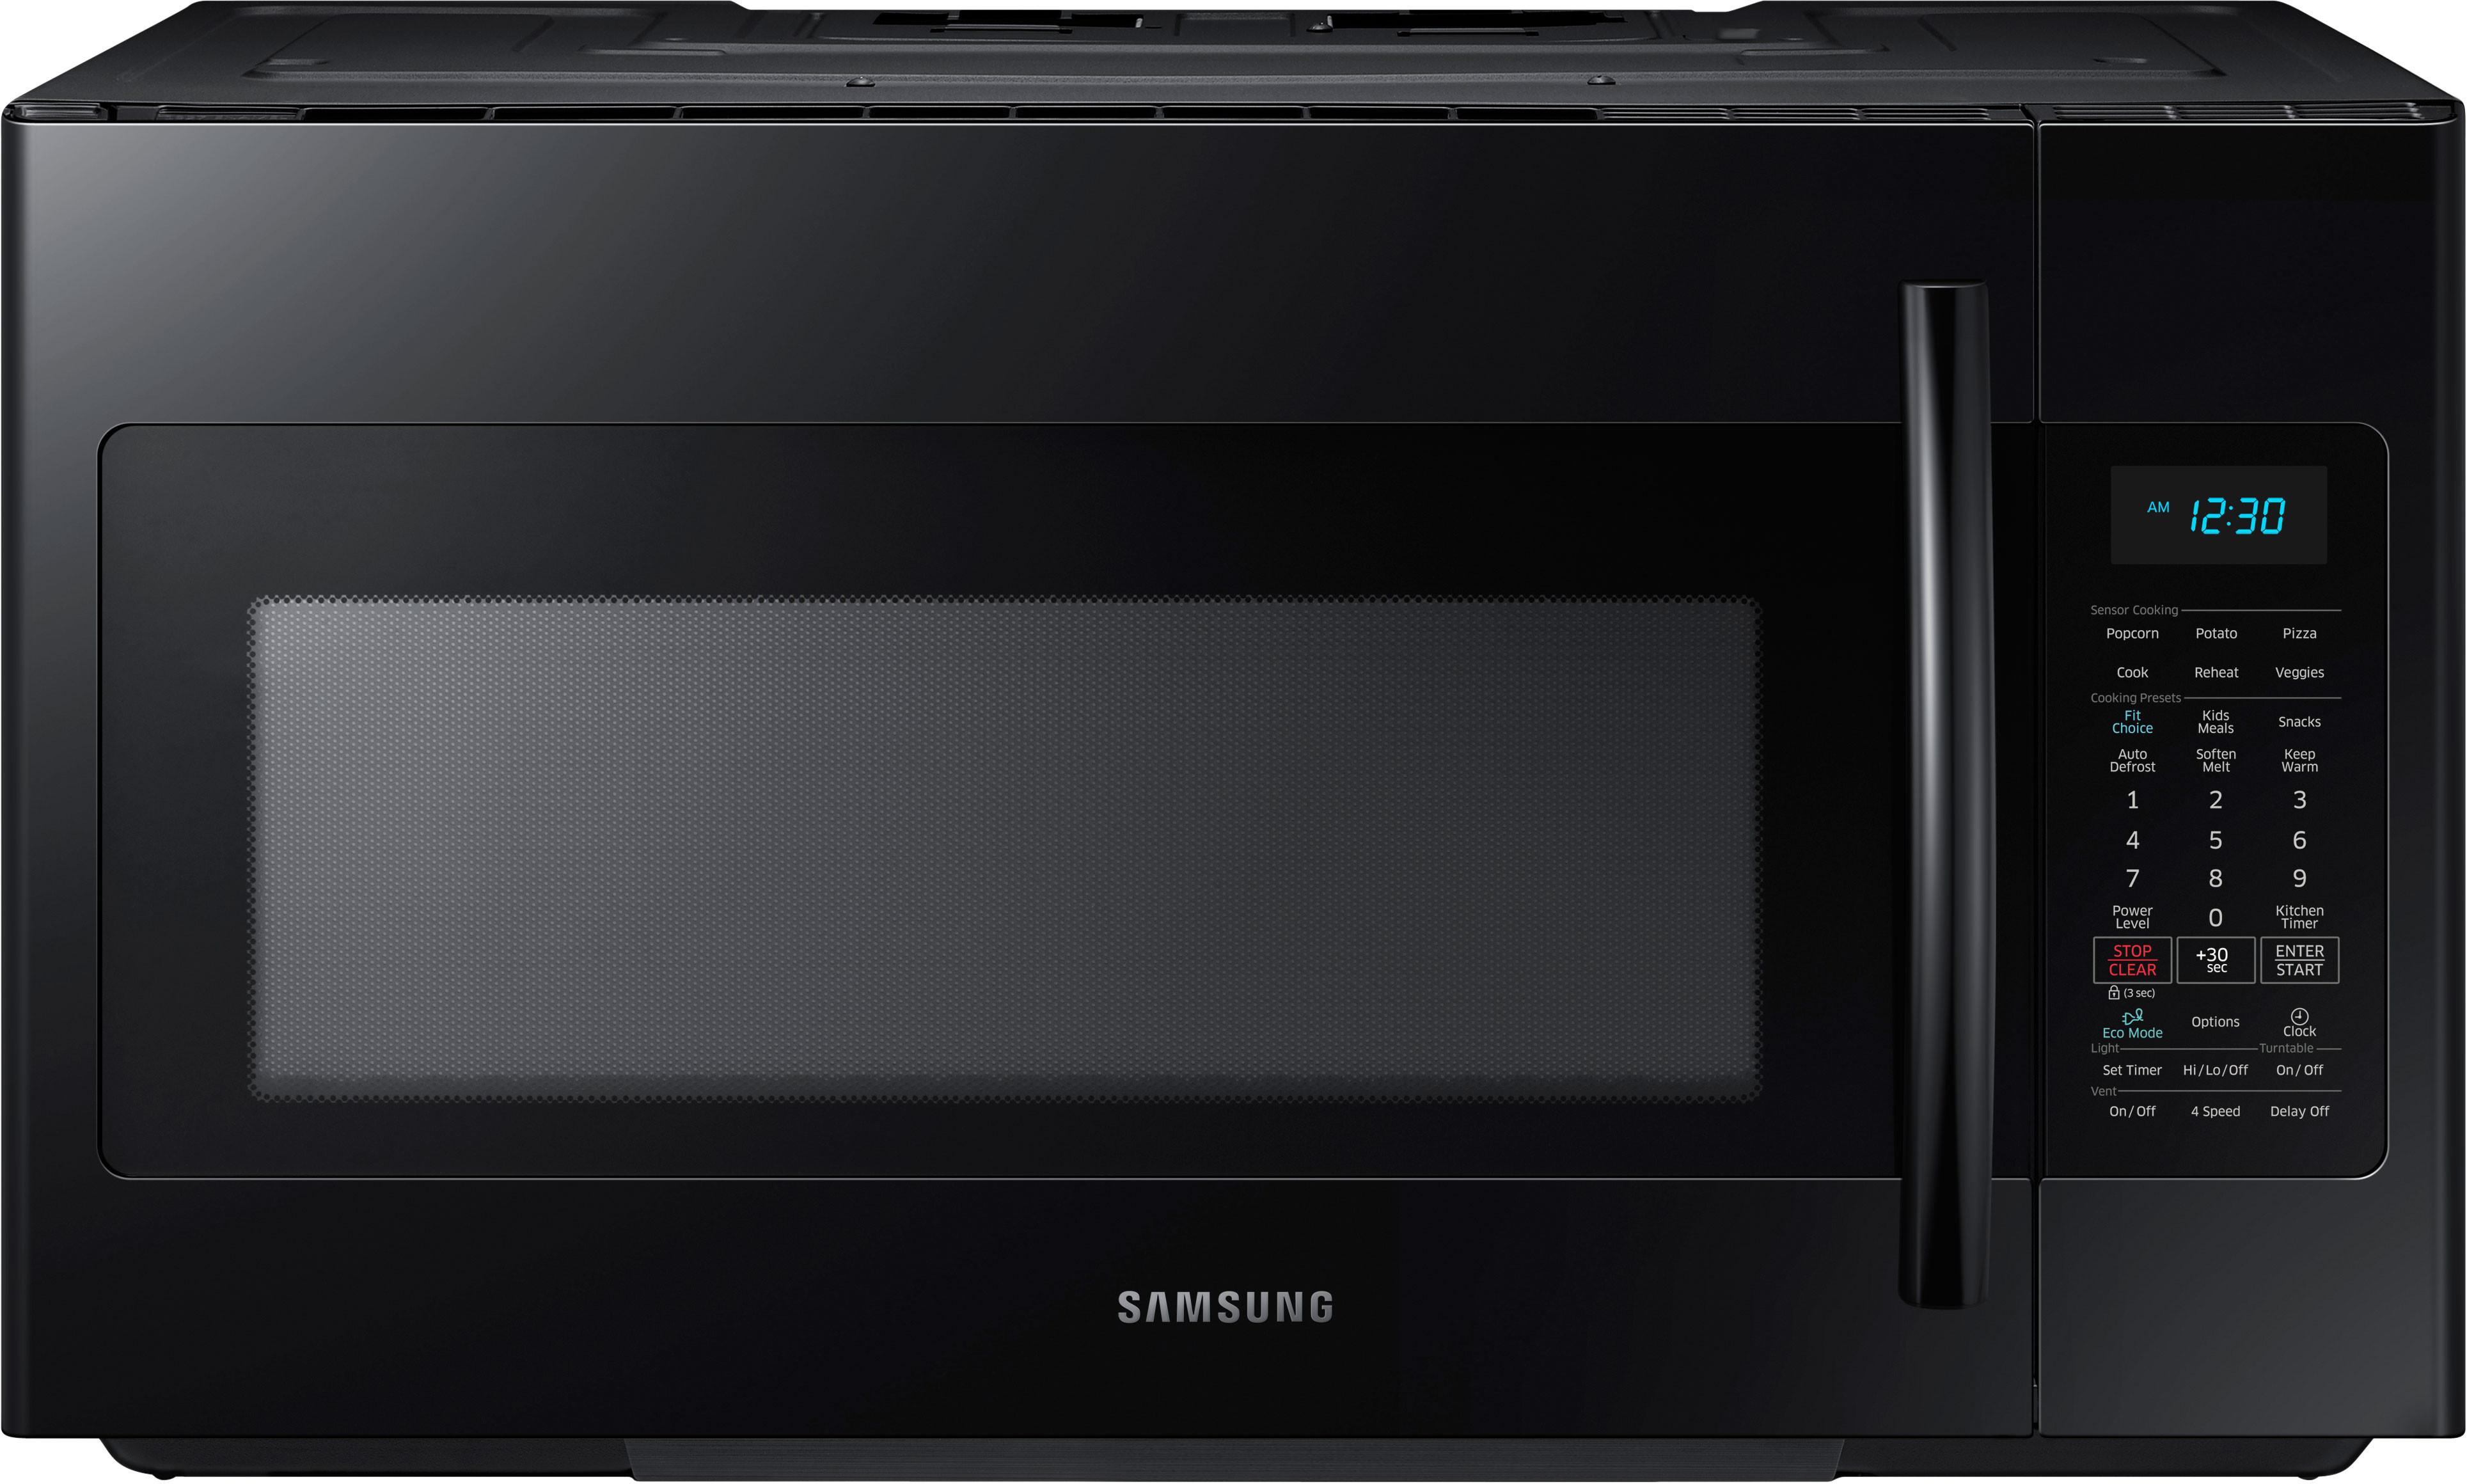 samsung microwave convection oven manual